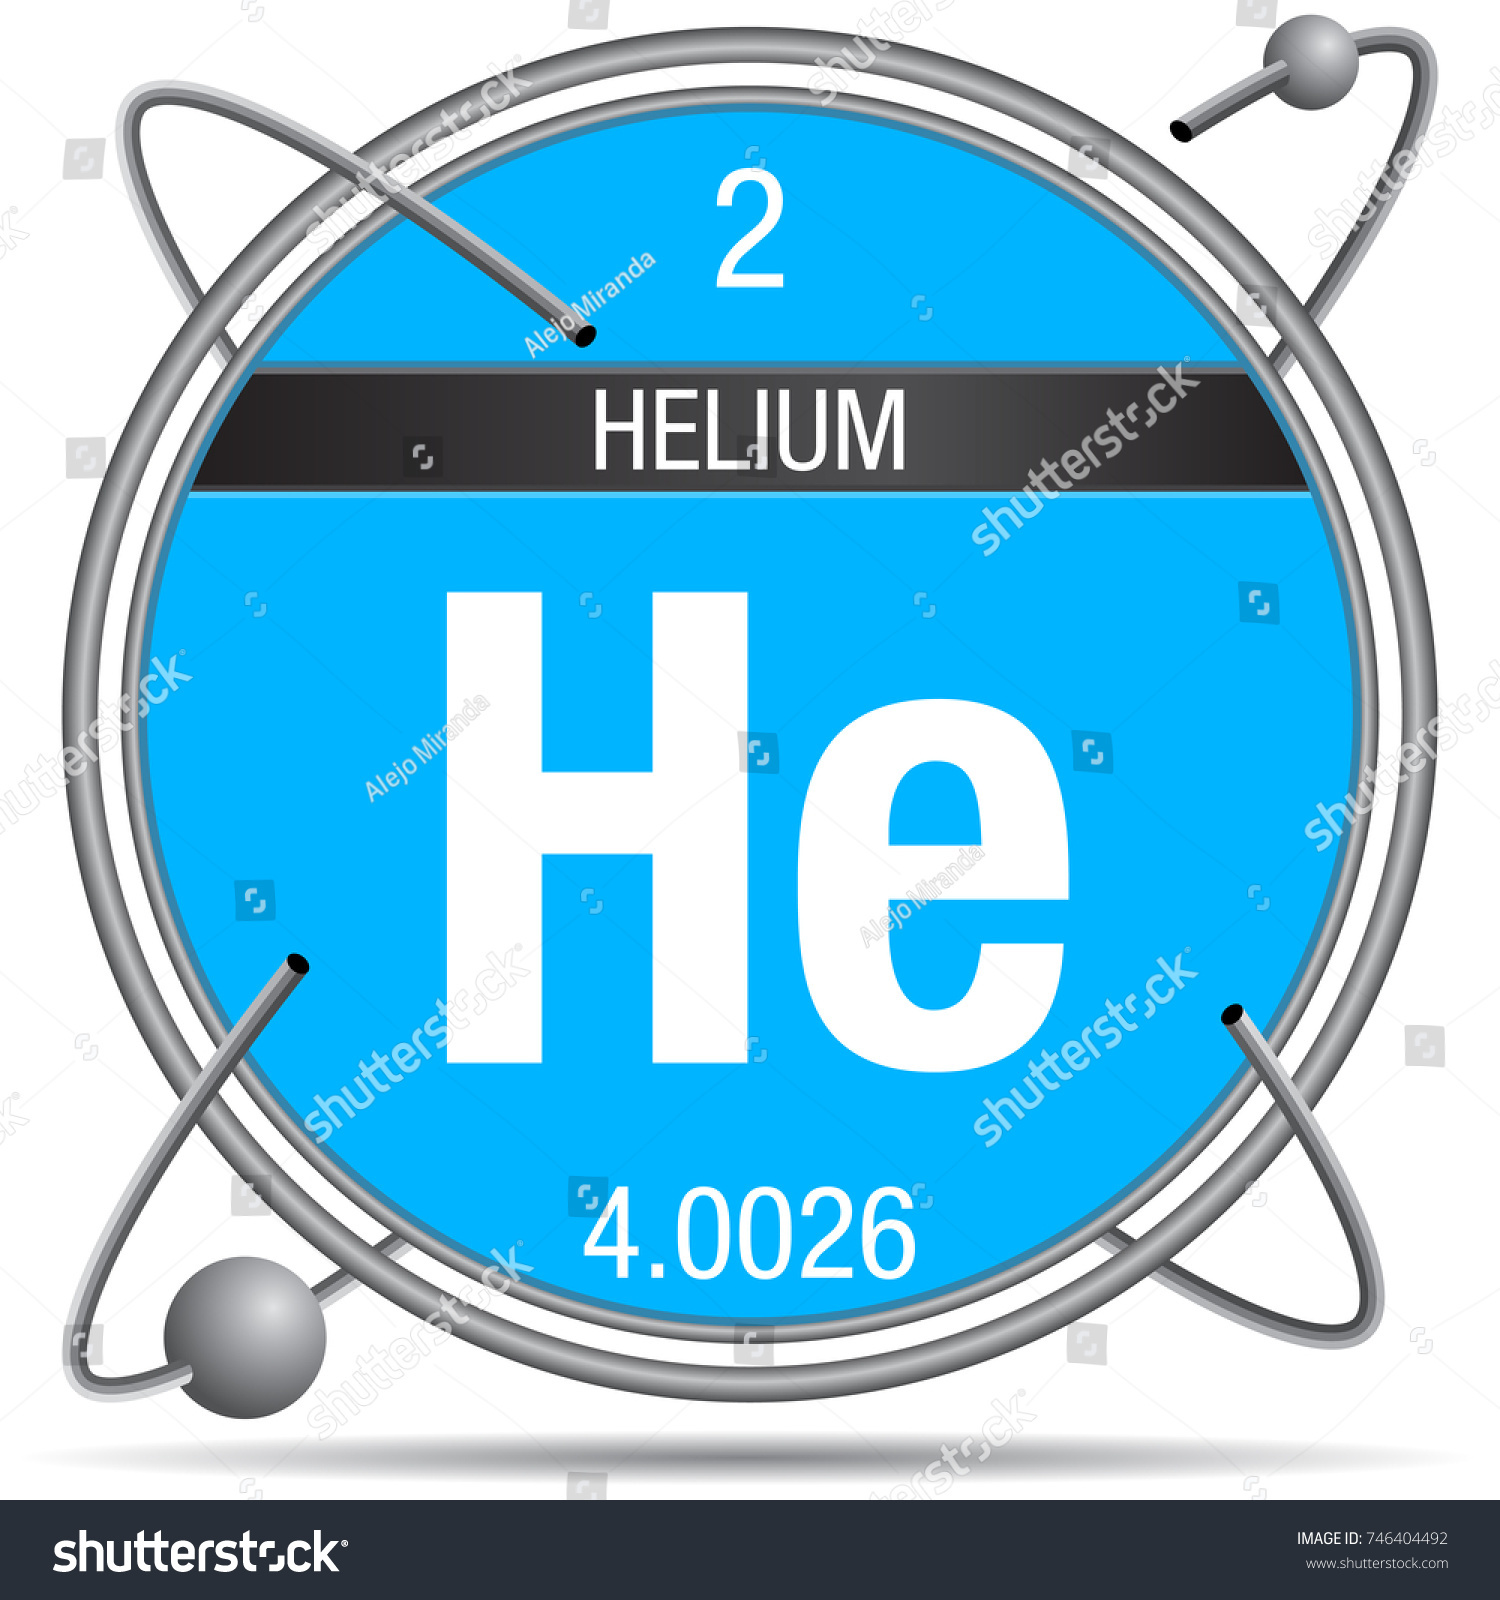 Helium symbol on periodic table images periodic table images helium symbol inside metal ring colored stock vector 746404492 helium symbol inside a metal ring with gamestrikefo Images